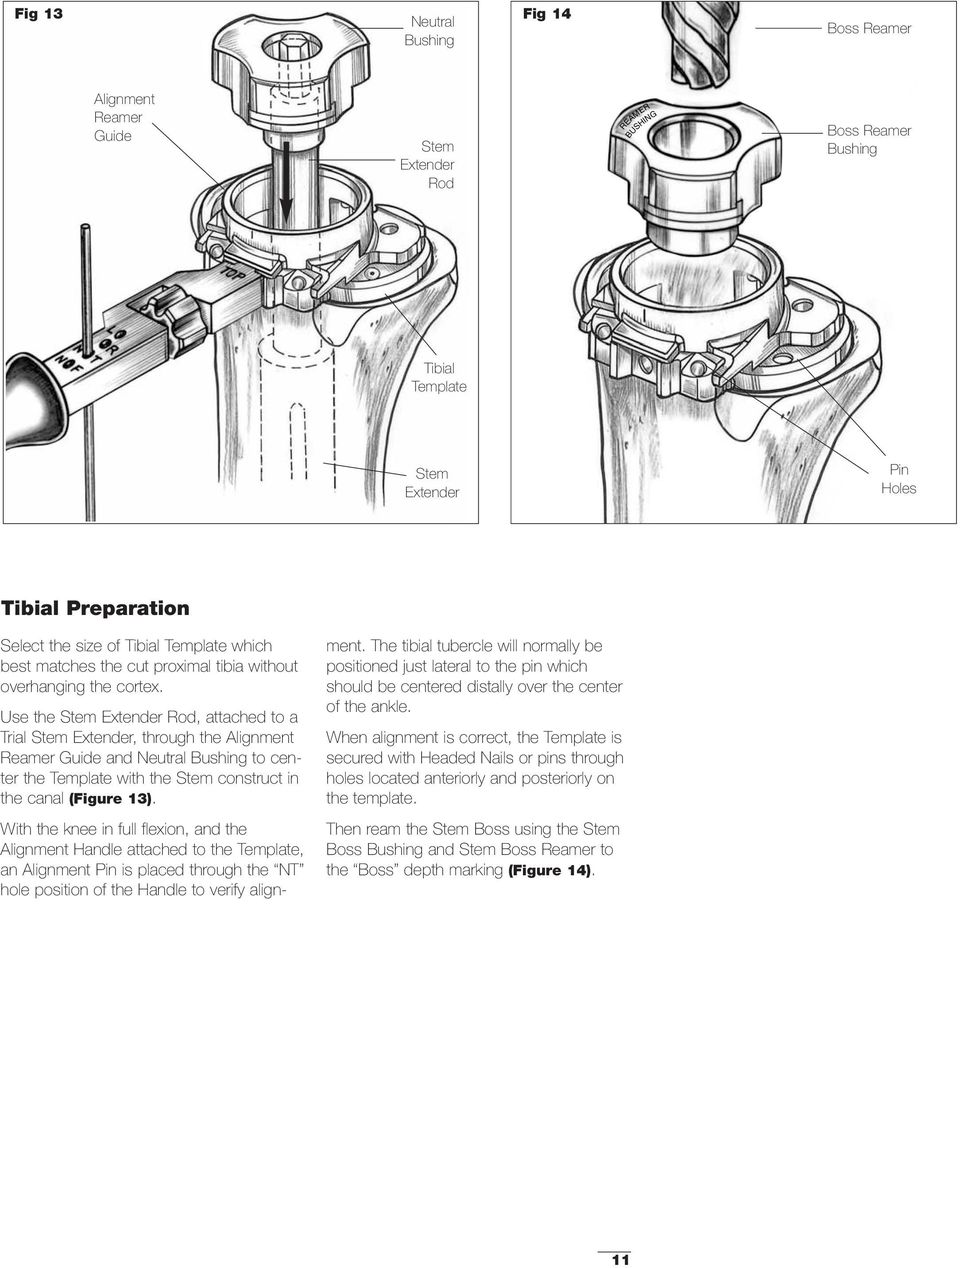 Use the Stem Extender Rod, attached to a Trial Stem Extender, through the Alignment Reamer Guide and Neutral Bushing to center the Template with the Stem construct in the canal (Figure 13).